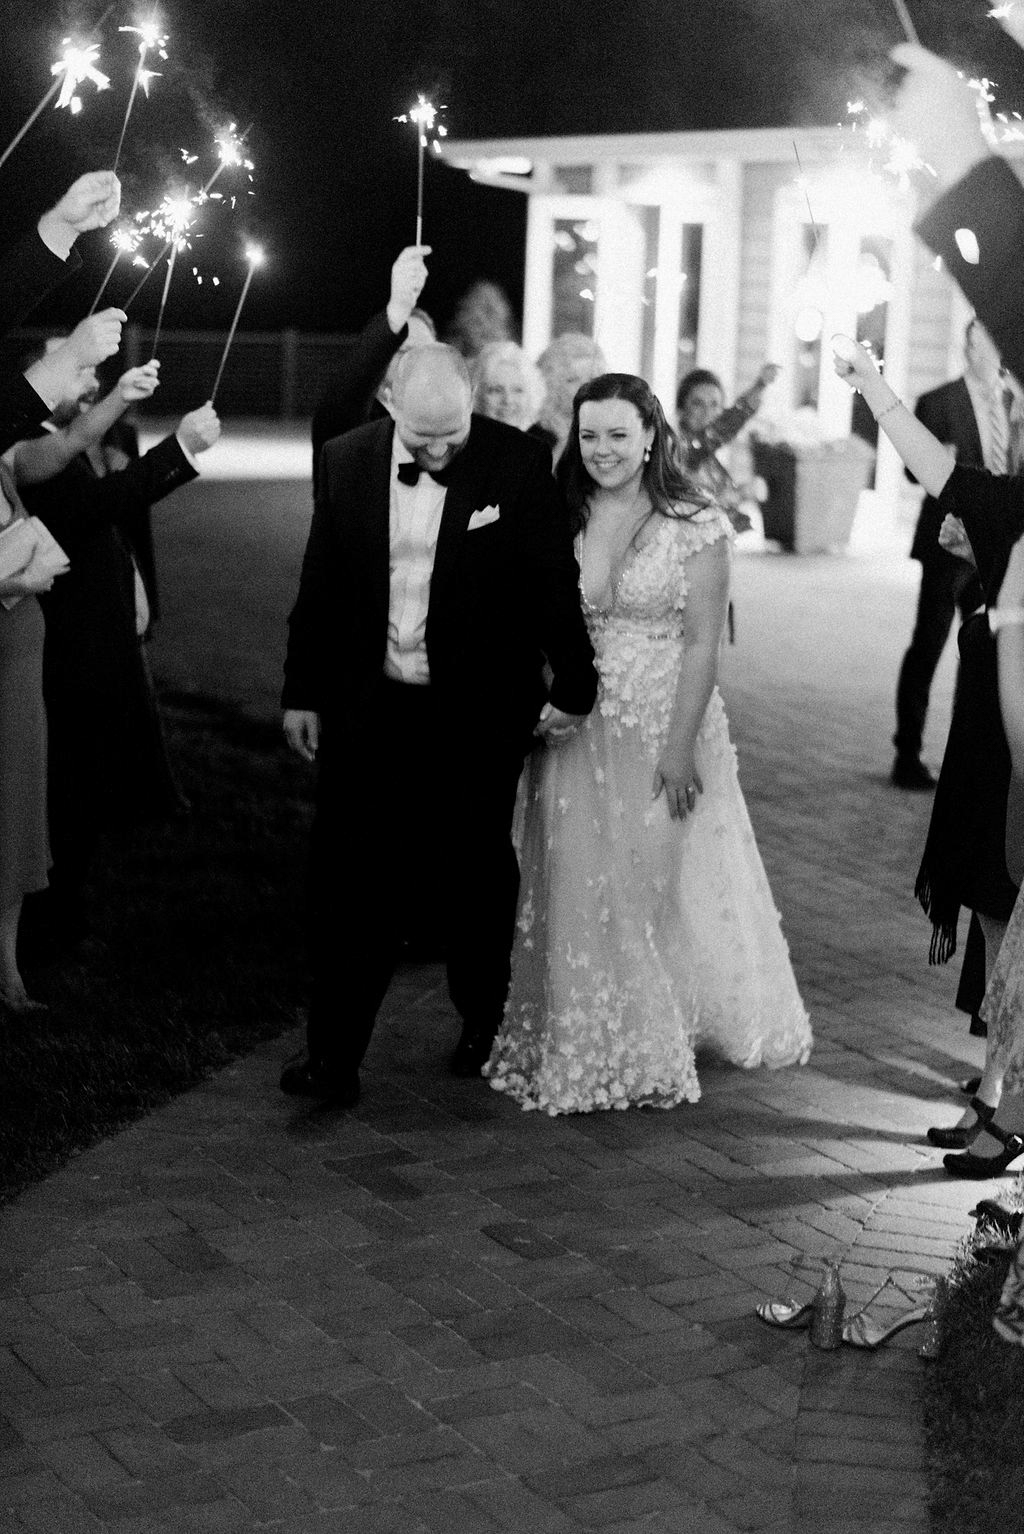 bride and groom exit wedding while guests hold sparklers